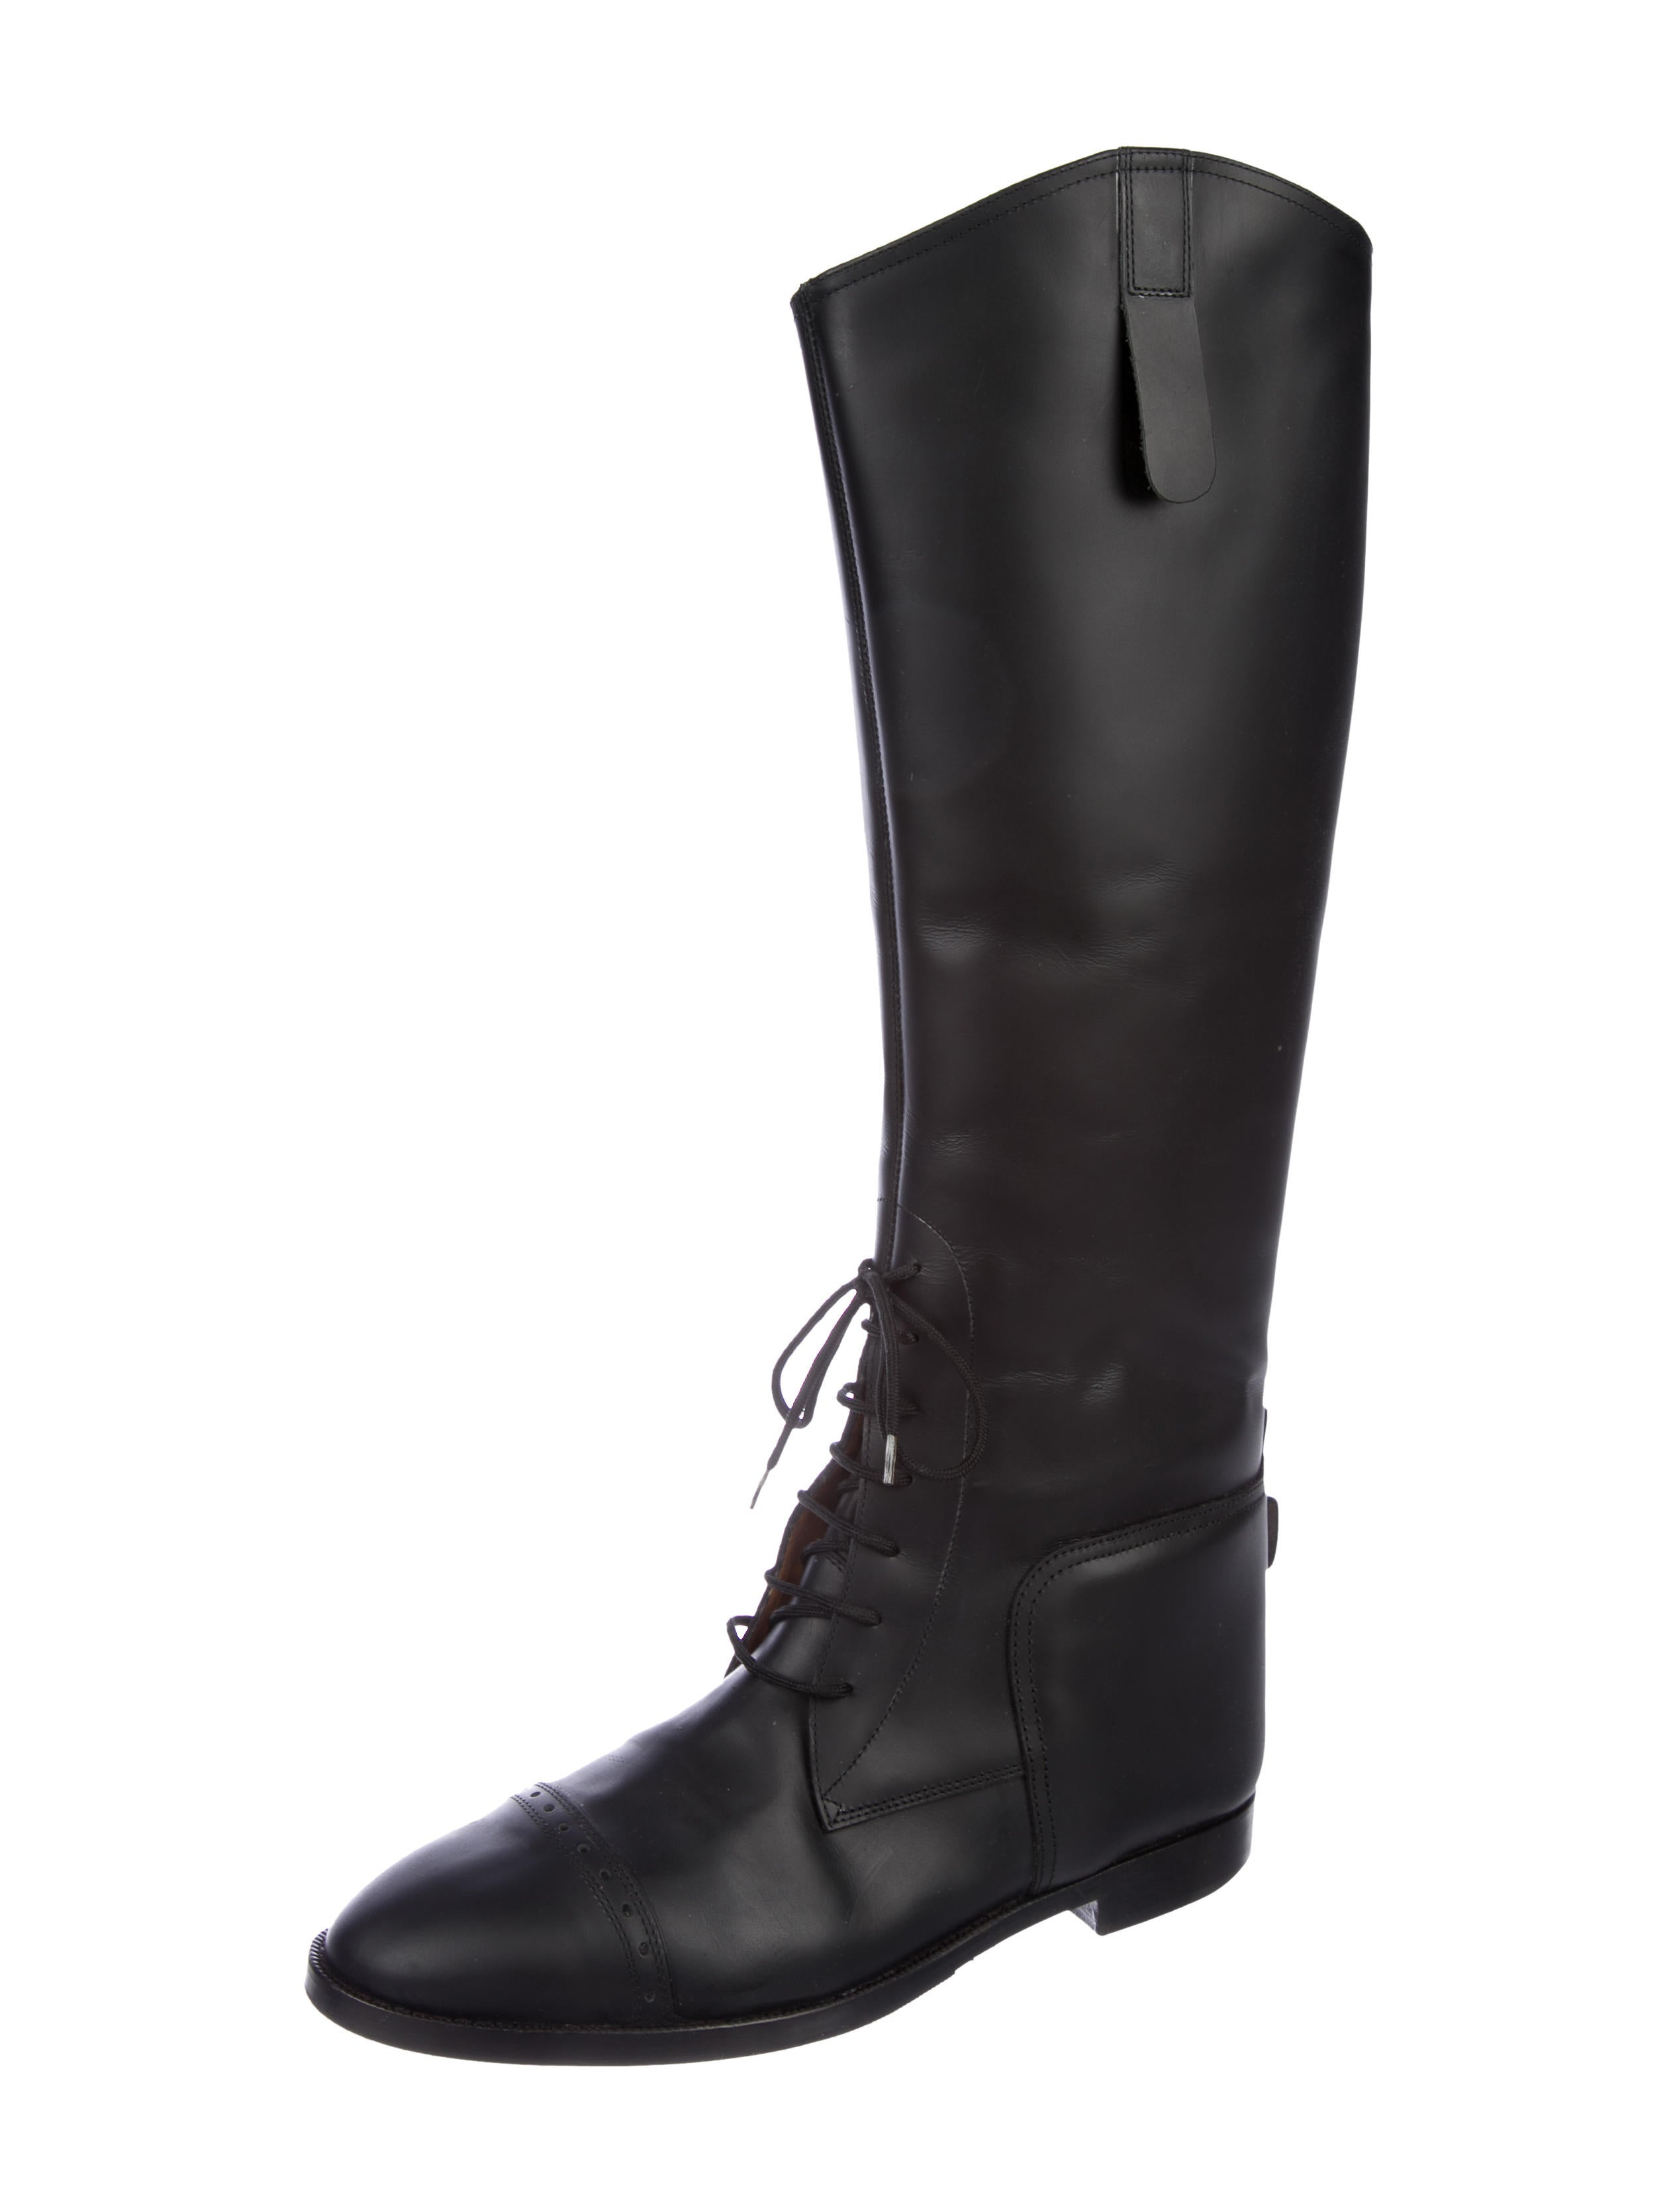 get authentic sale online outlet clearance store Golden Goose Garcia Knee-High Boots sale visit new wld0hpXx